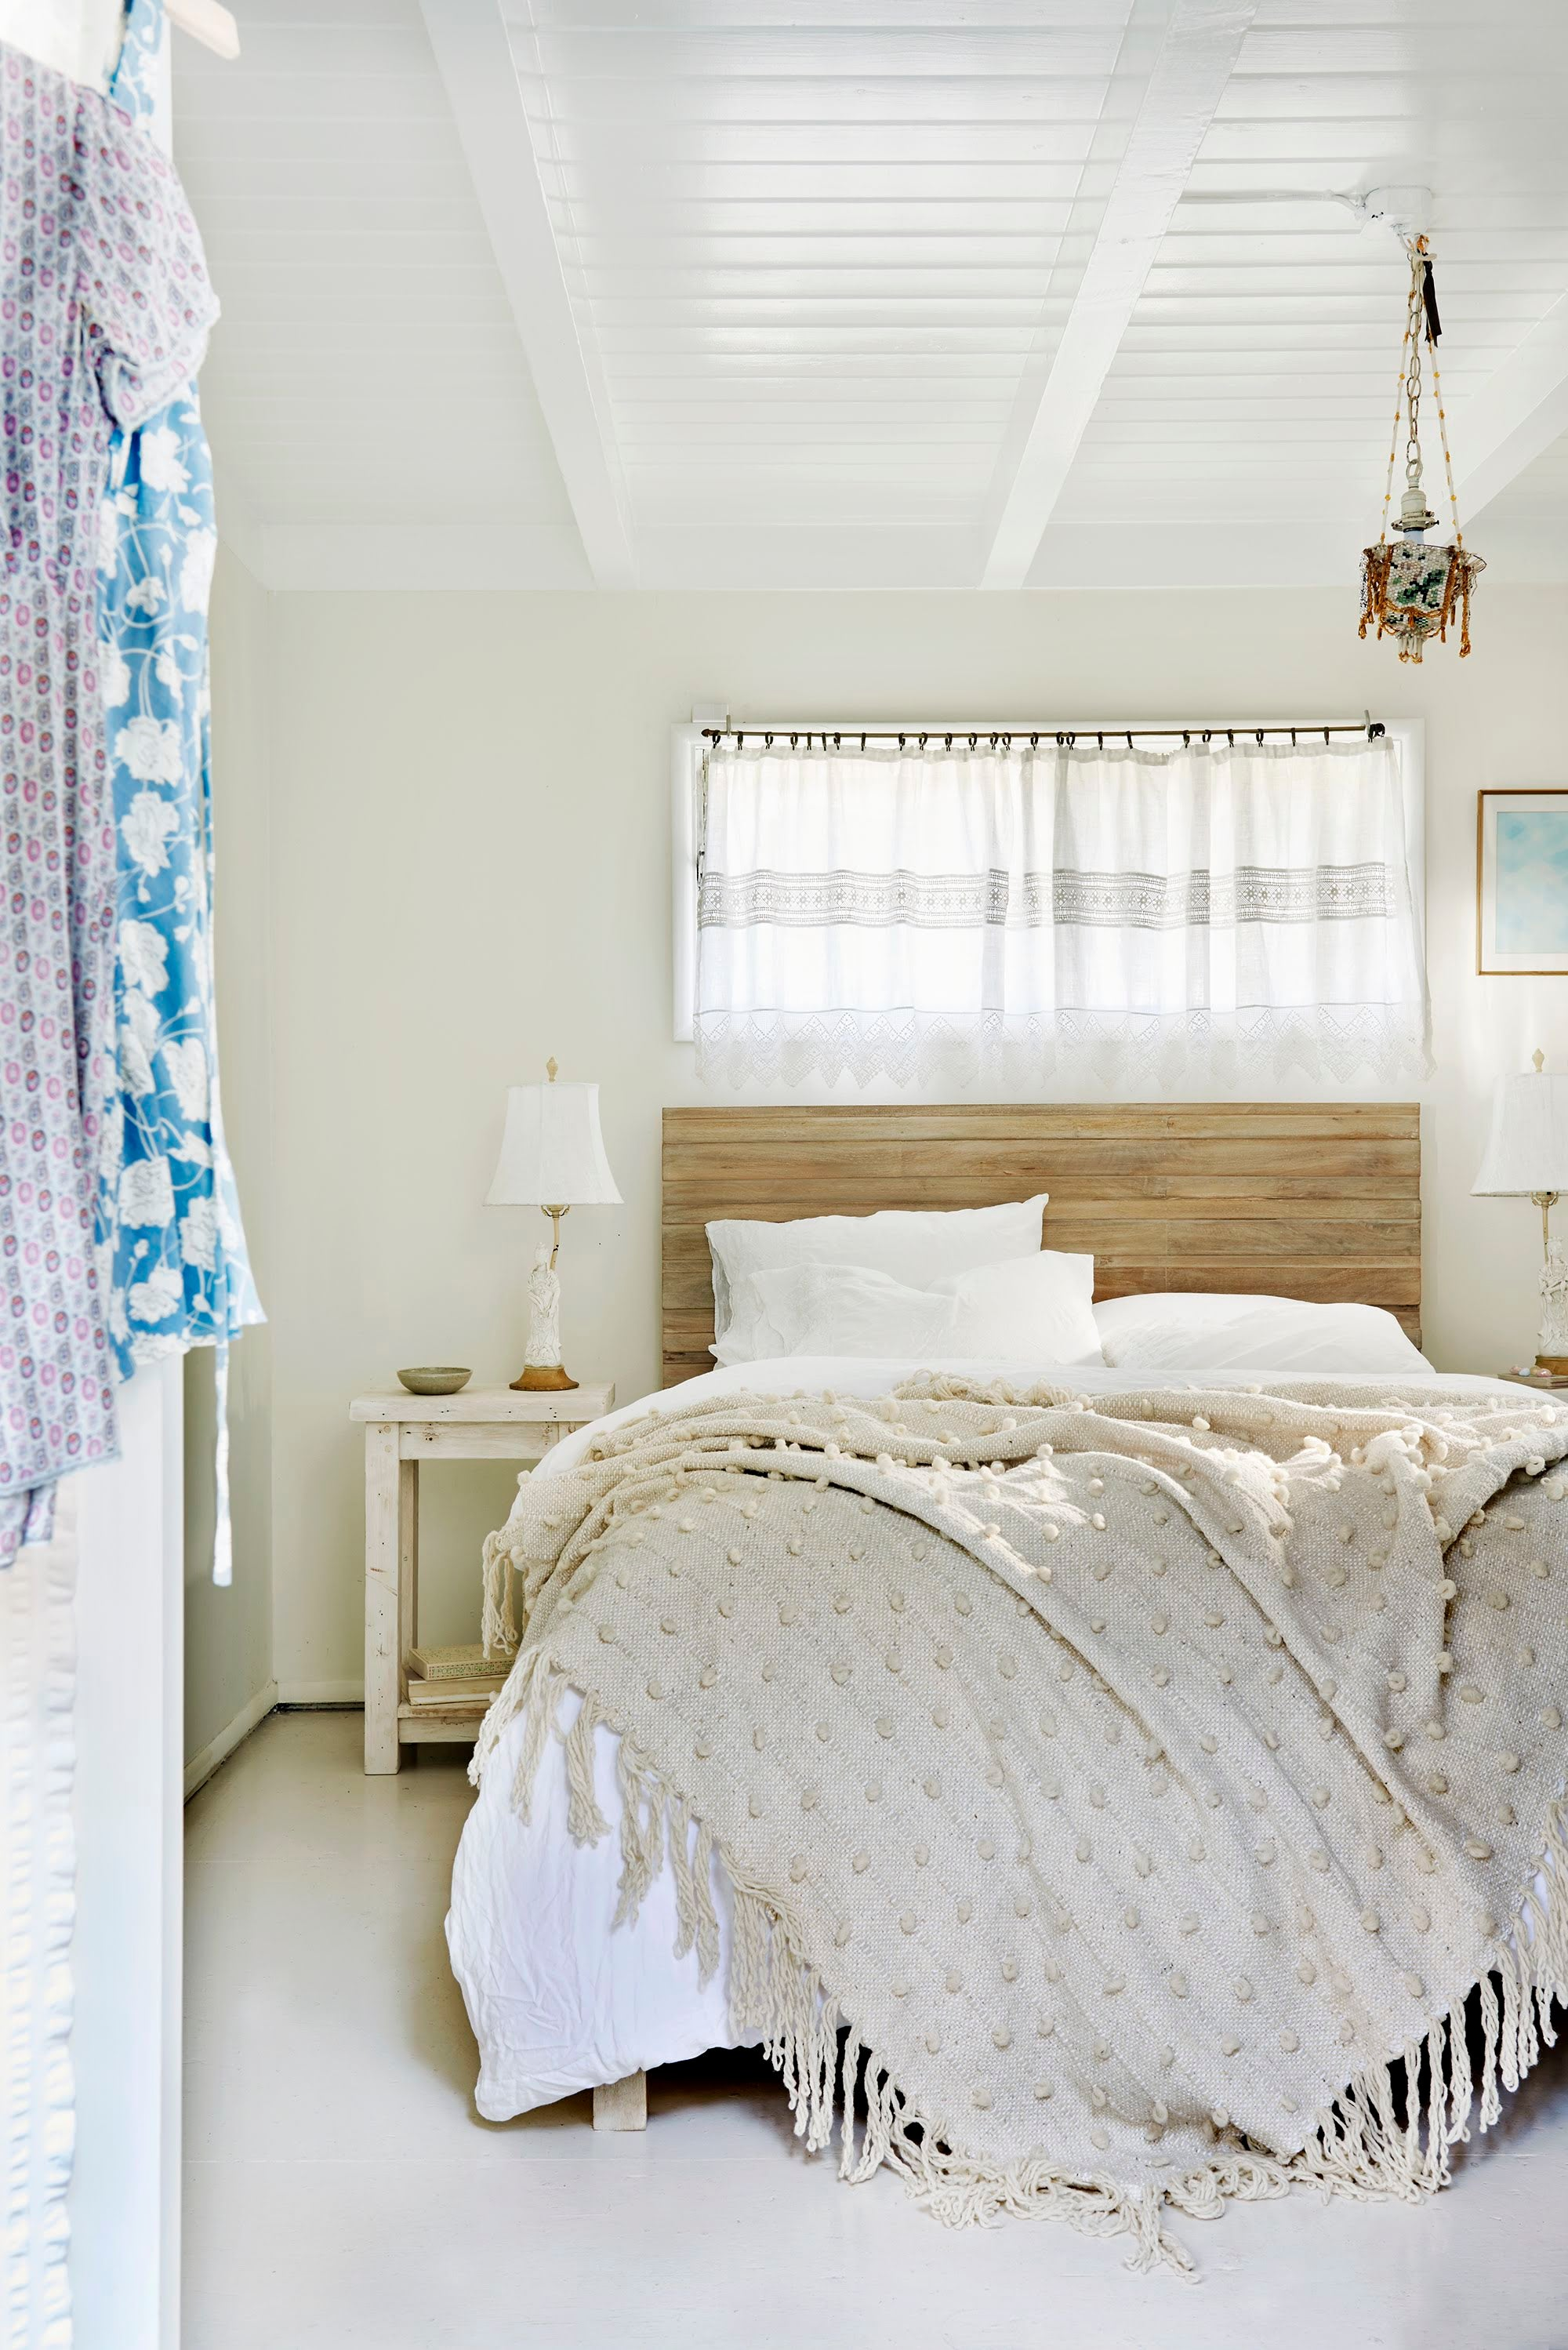 The 4 Best Bedroom Paint Colors, According to Designers